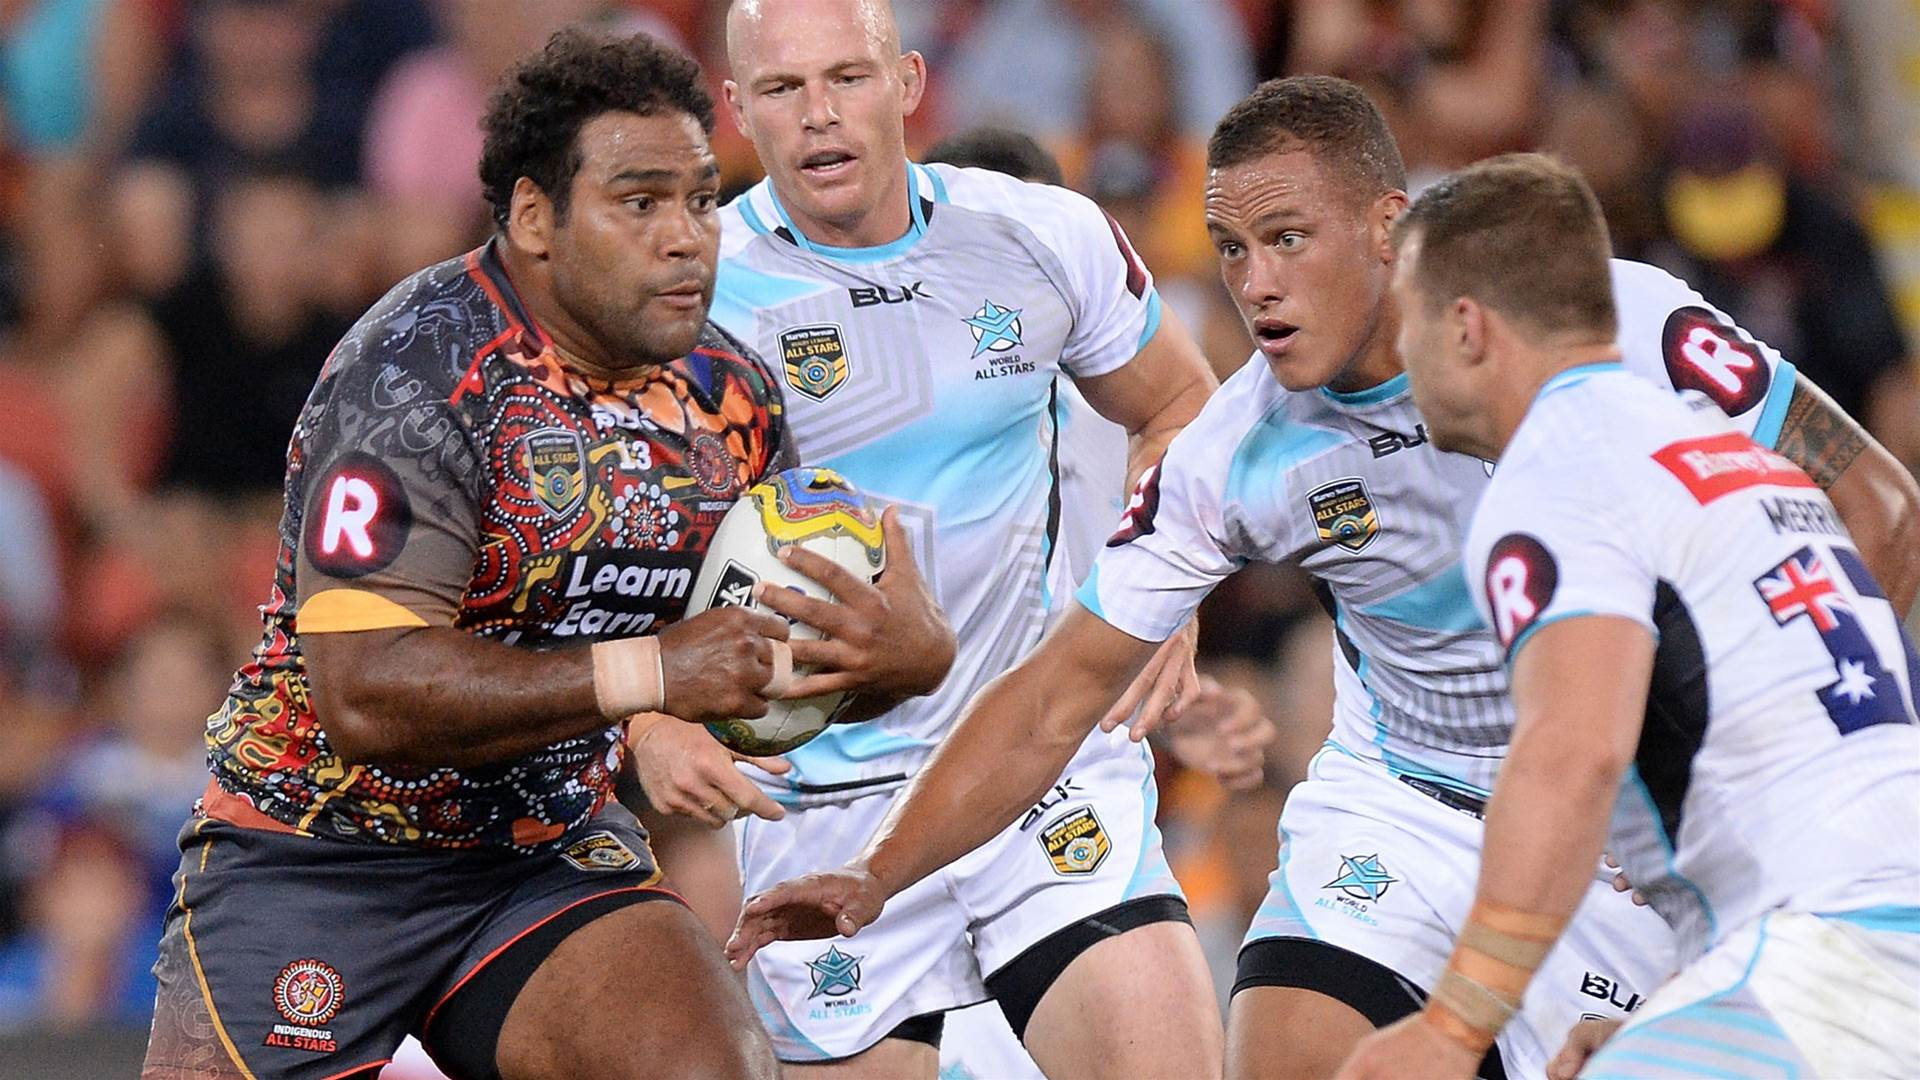 Indigenous All Stars need meaningful rivals